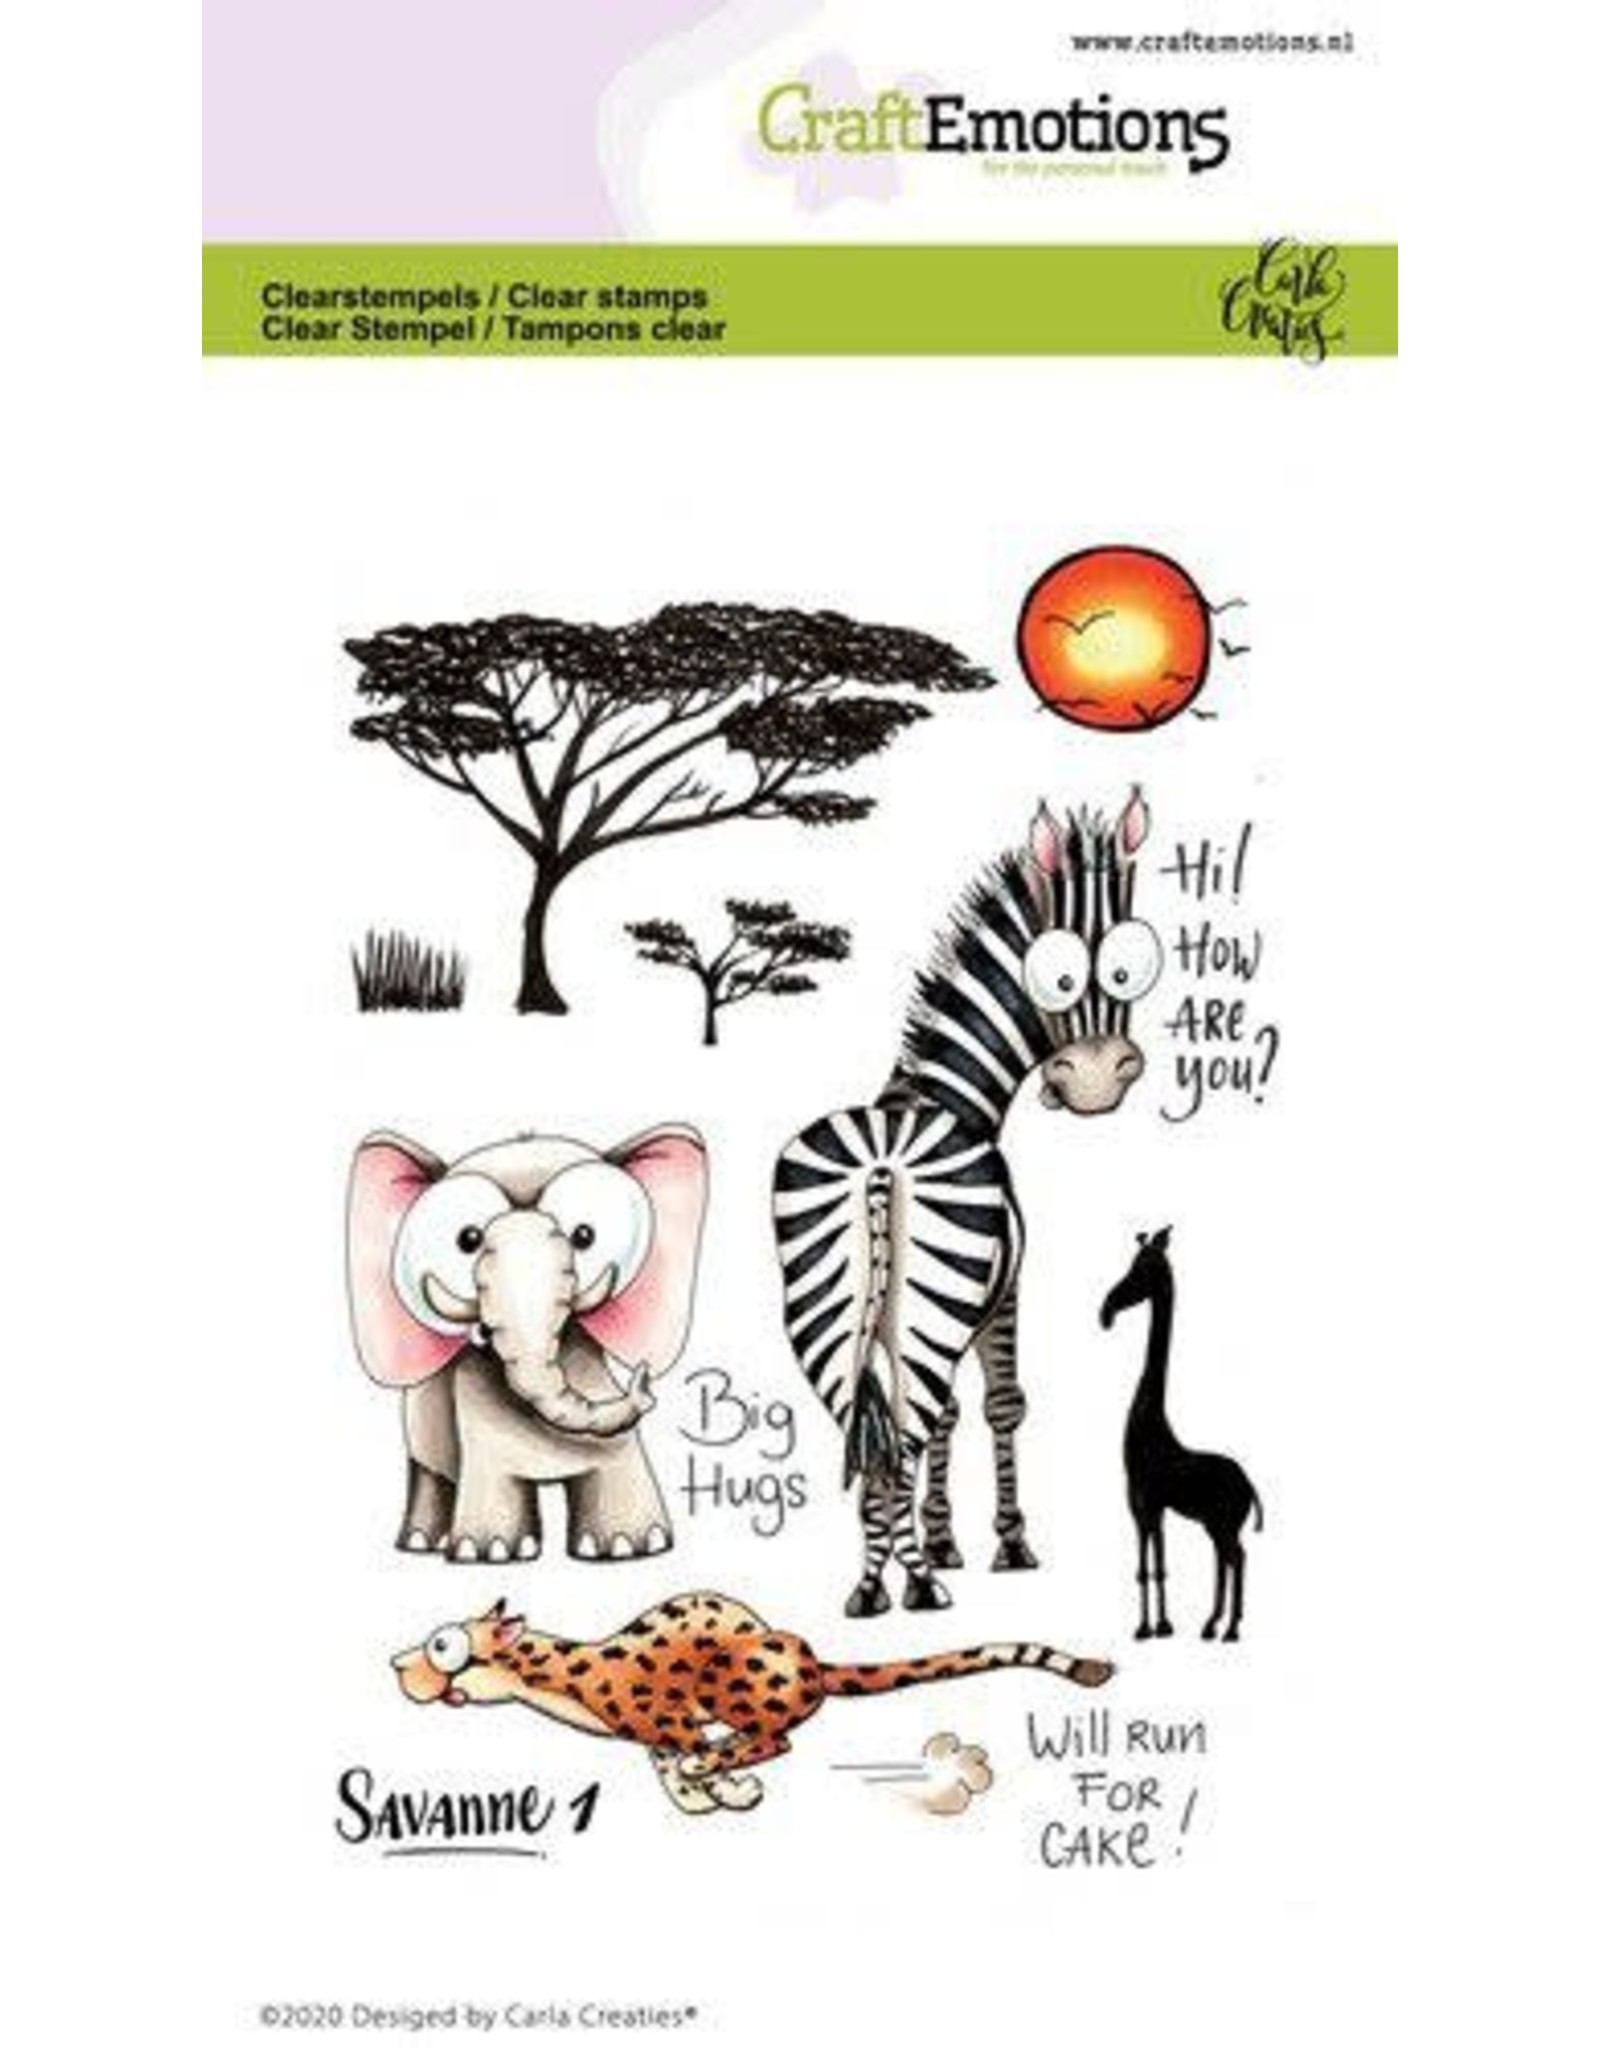 Craft Emotions CraftEmotions clearstamps A6 - Savanne 1 Carla Creaties